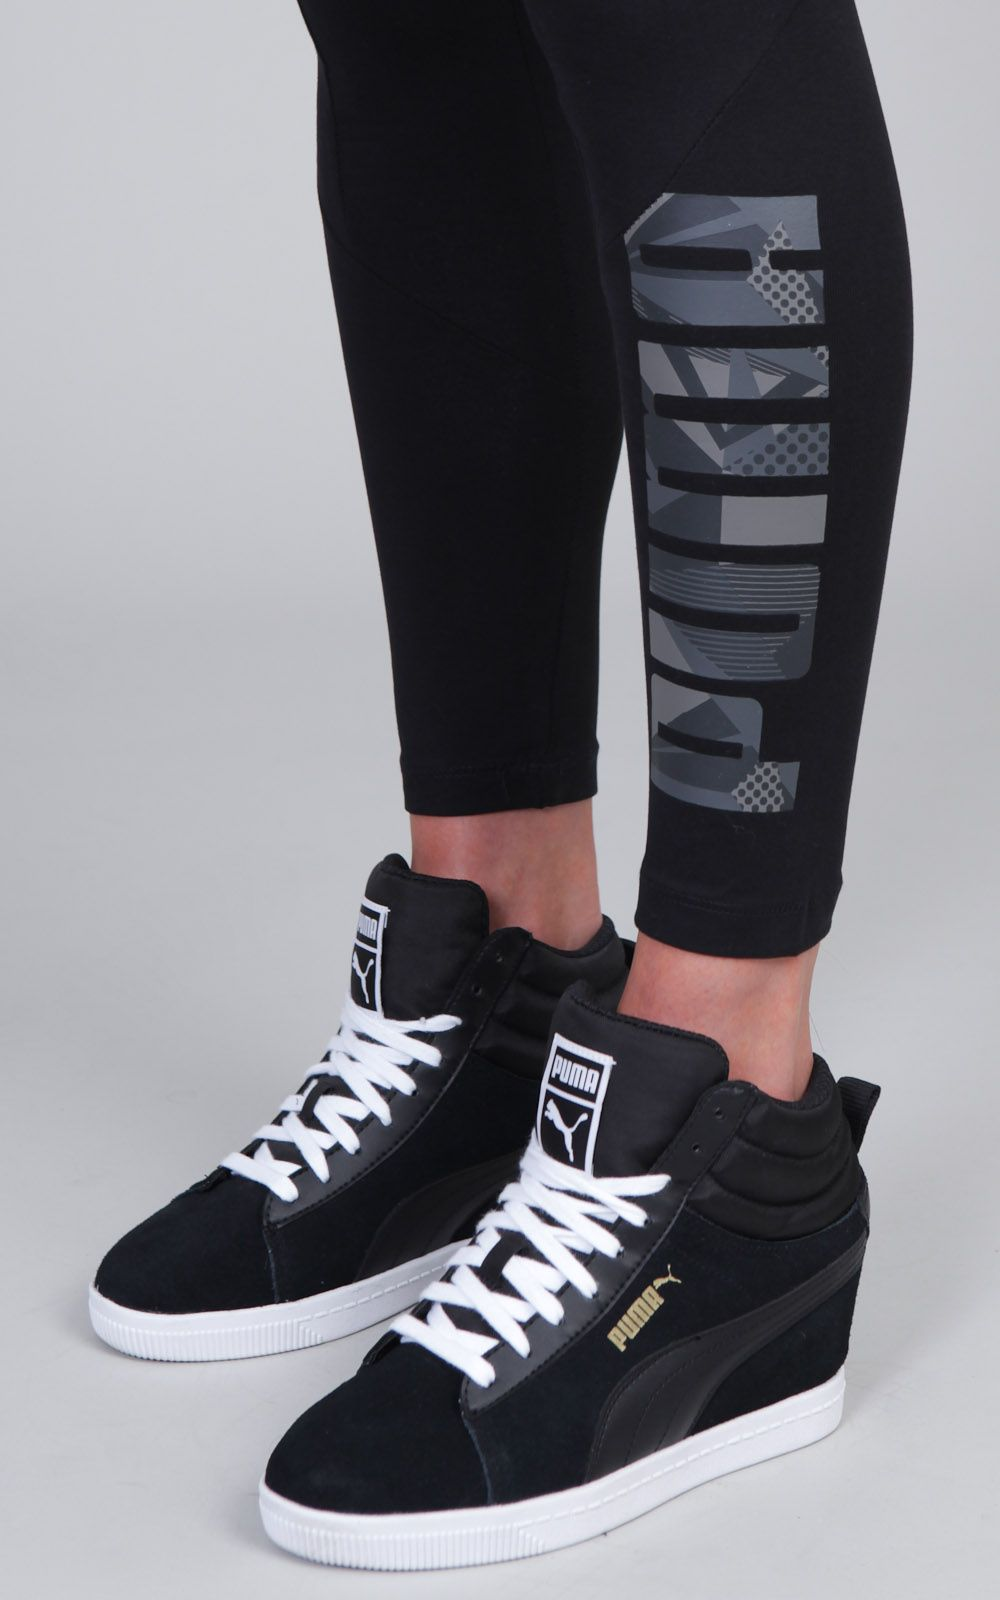 hot sale online 9a196 2fbb3 PUMA logo leggings paired with the PUMA Suede Classic sneaker wedge in  versatile black